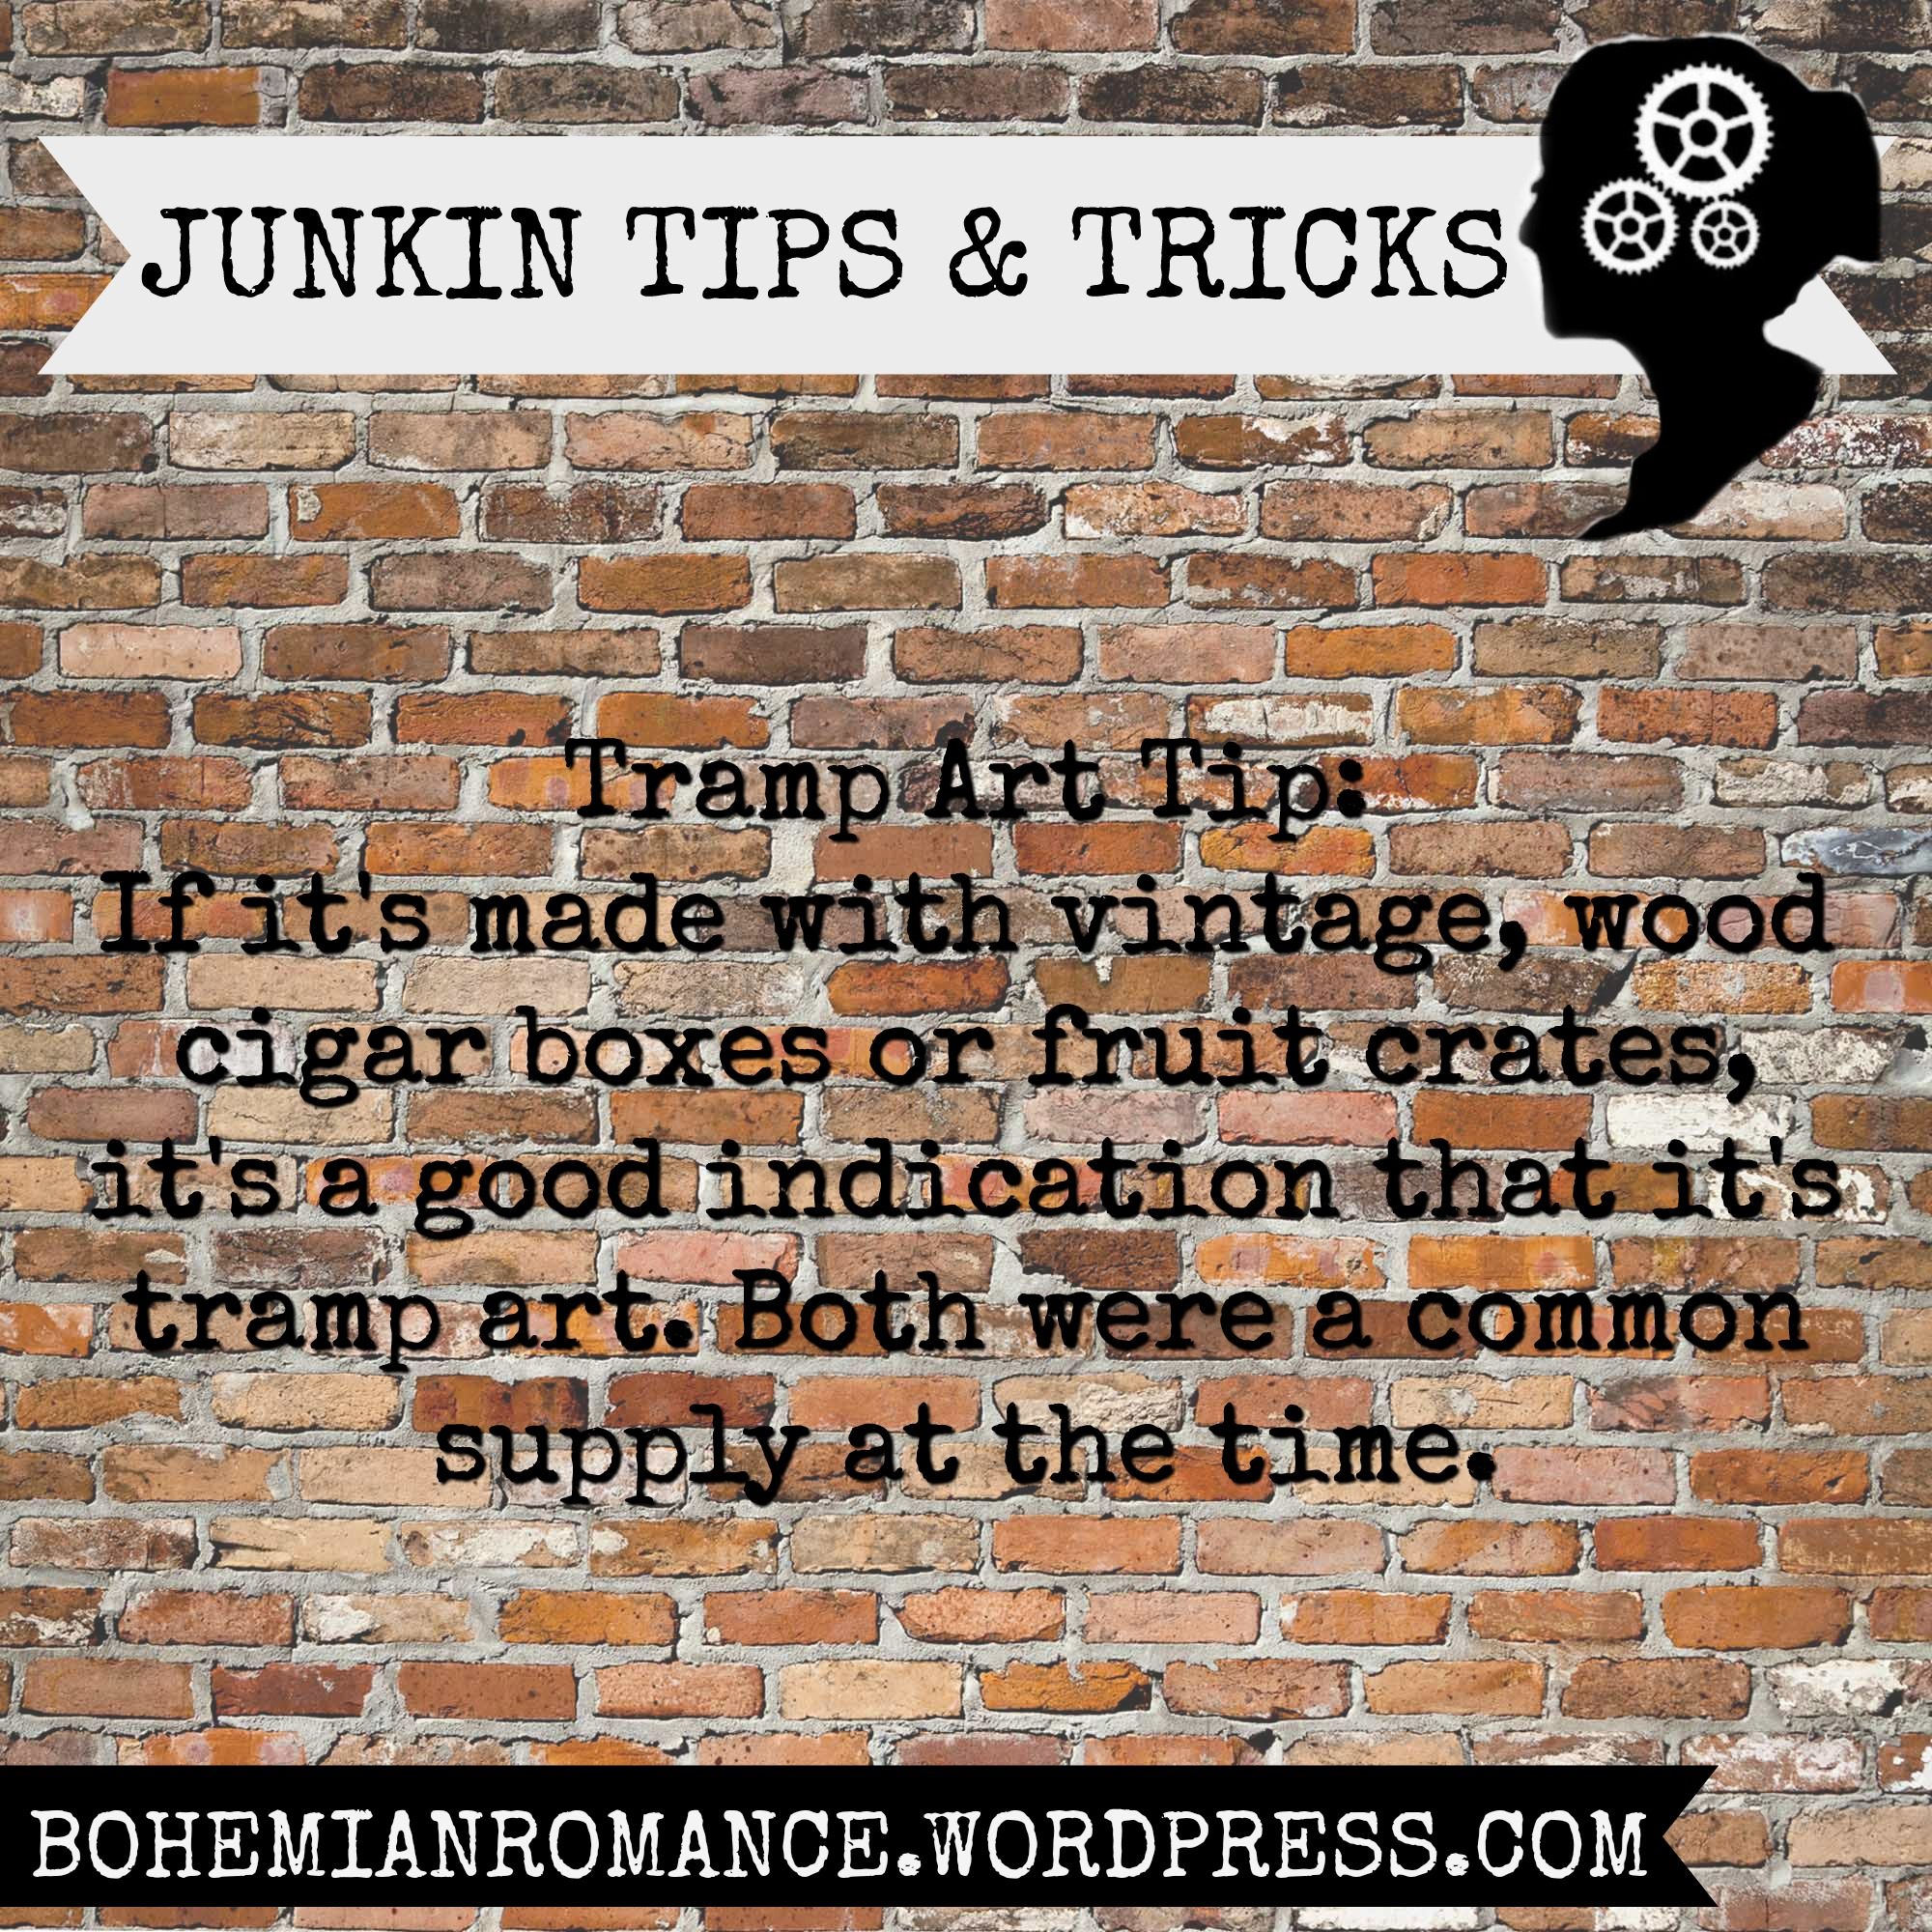 50-junkin-tips-tricks-template